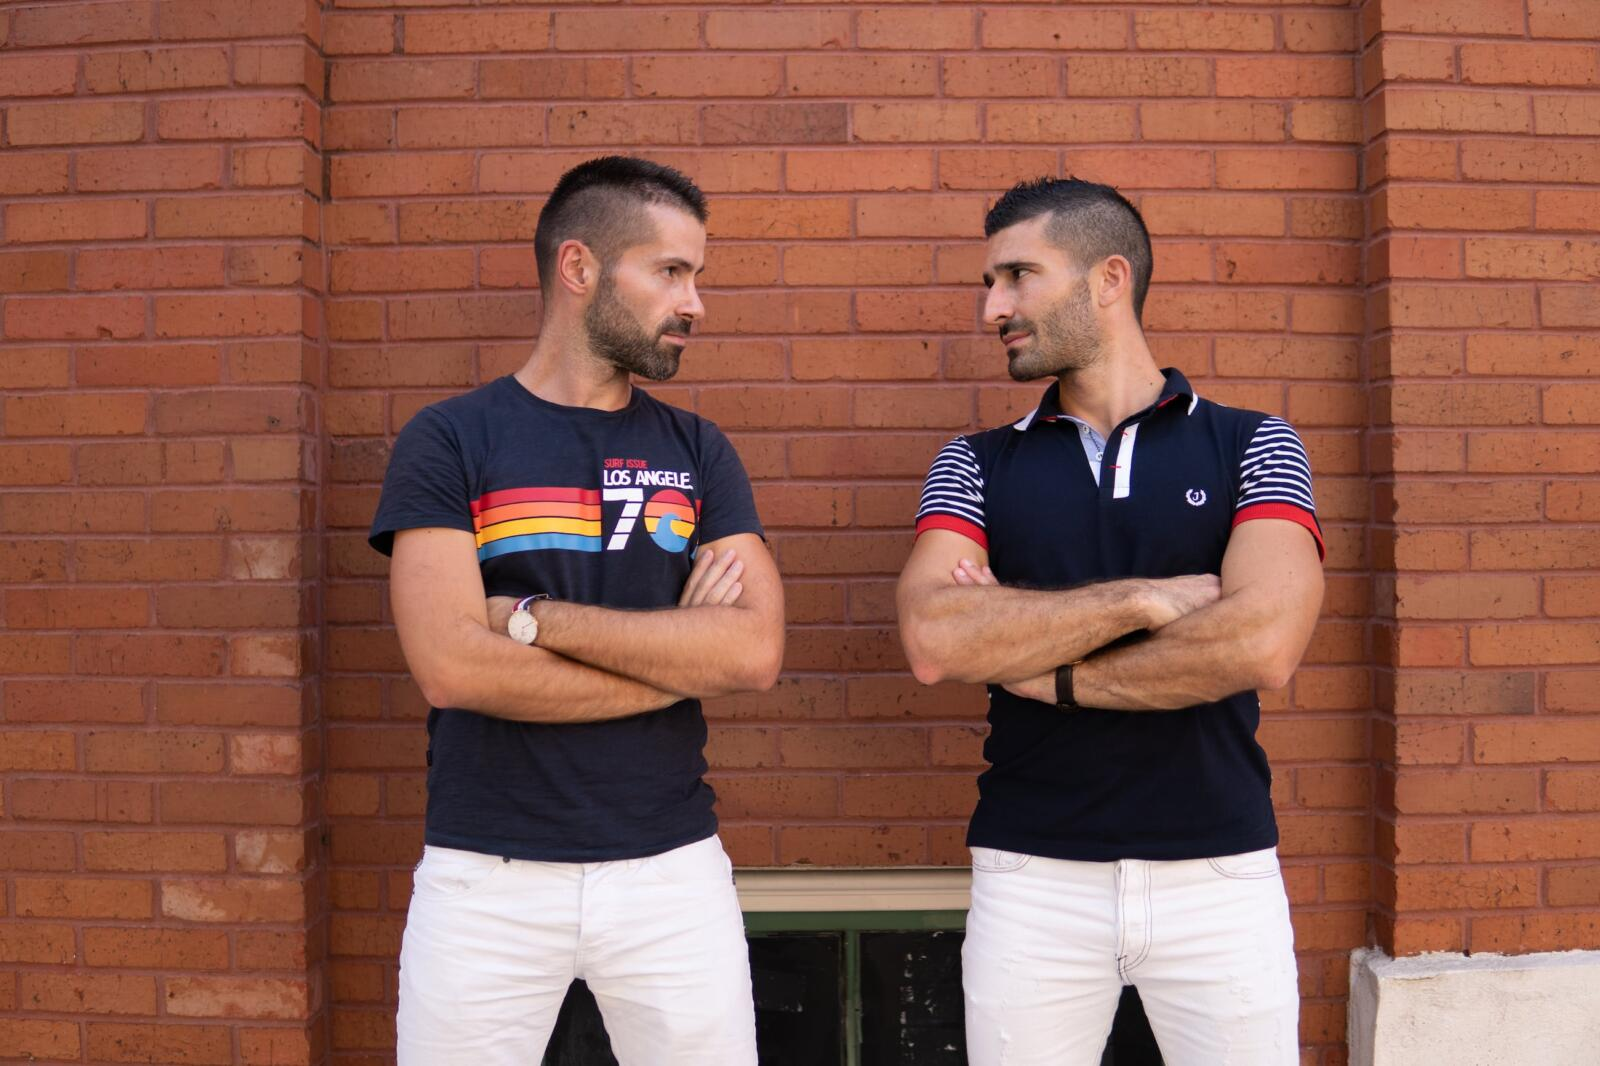 We love exploring the history and gay scene in Tampa's Ybor City